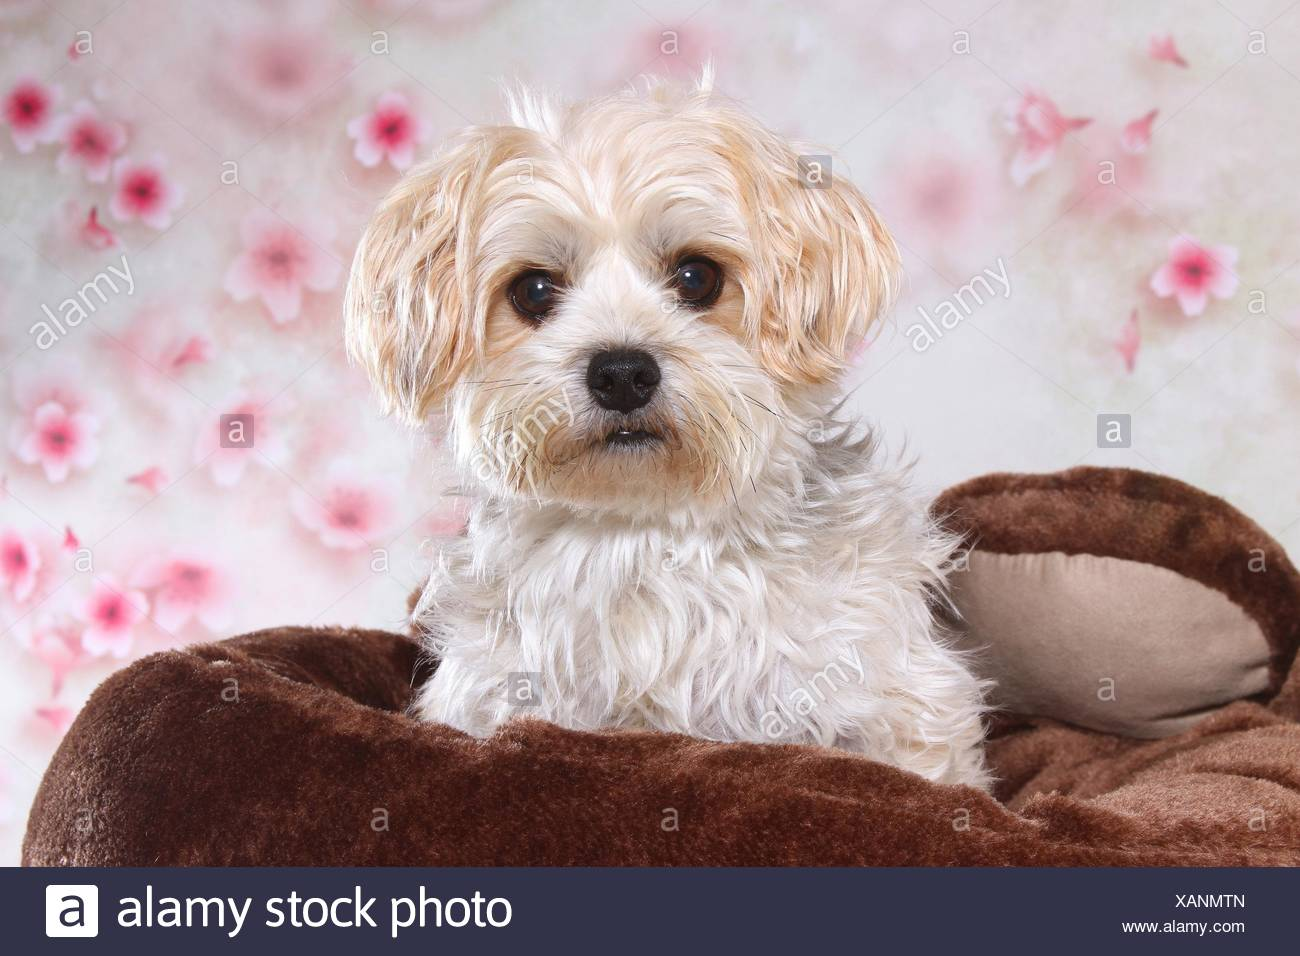 Golddust Yorkshire Terrier Portrait Stock Photo 281989813 Alamy